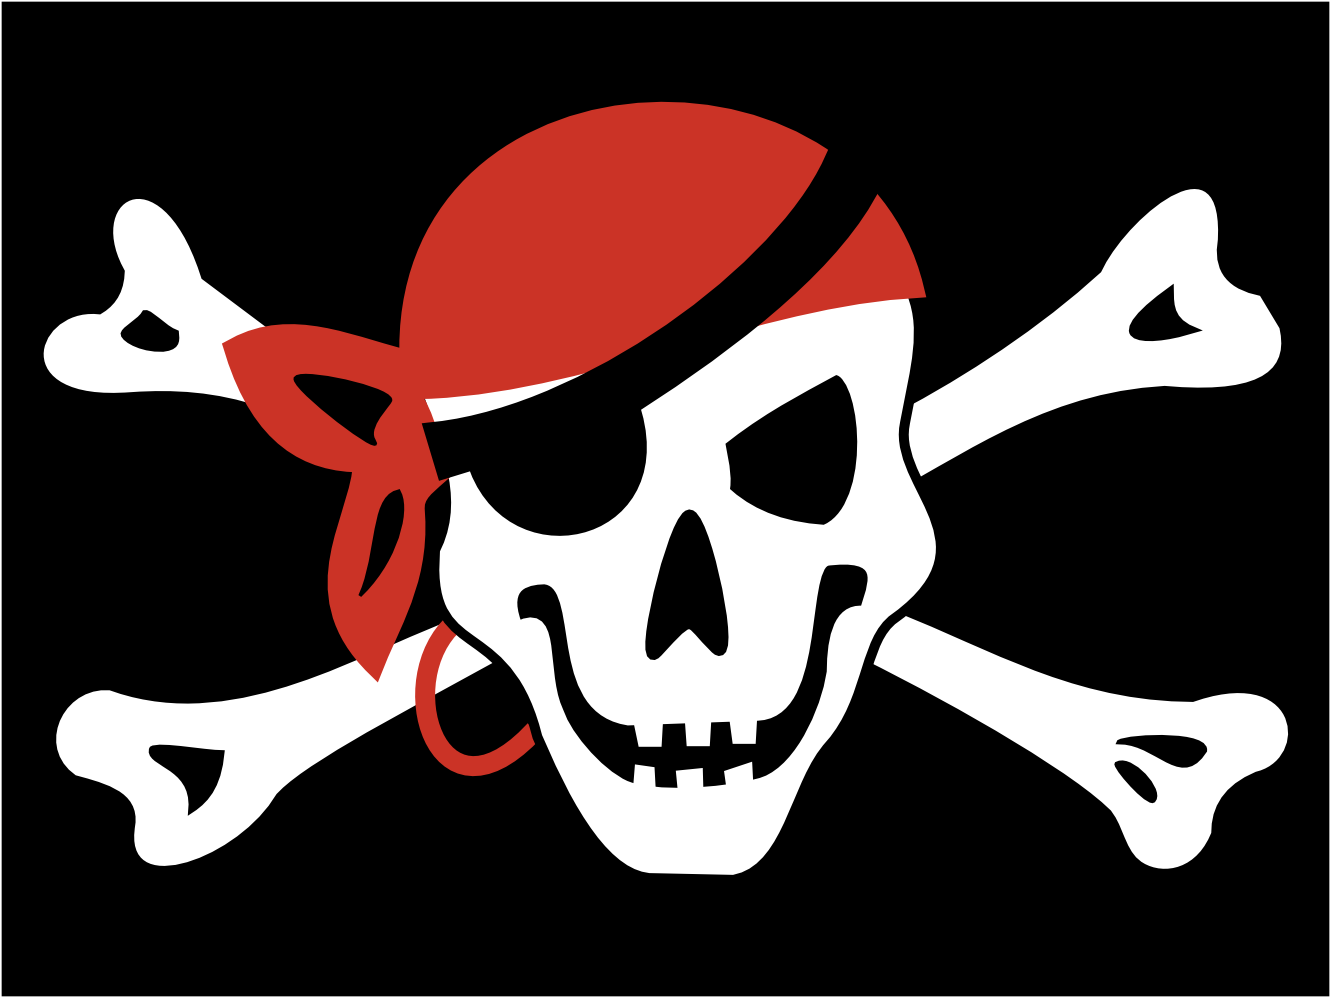 clipart pirate flag - photo #4